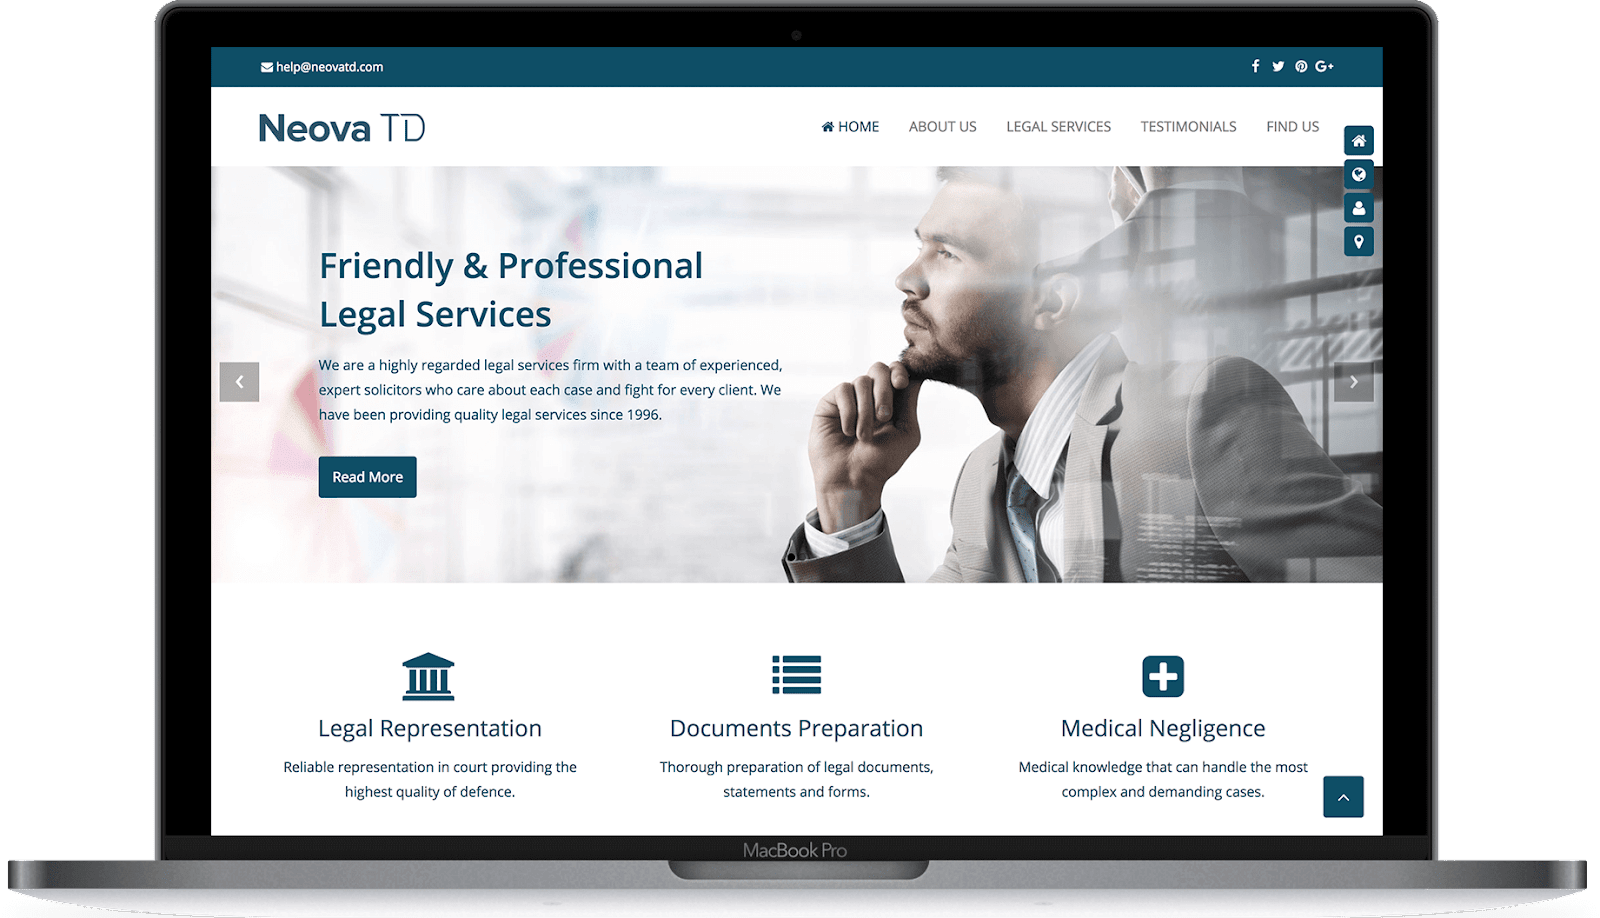 Make the website look professional